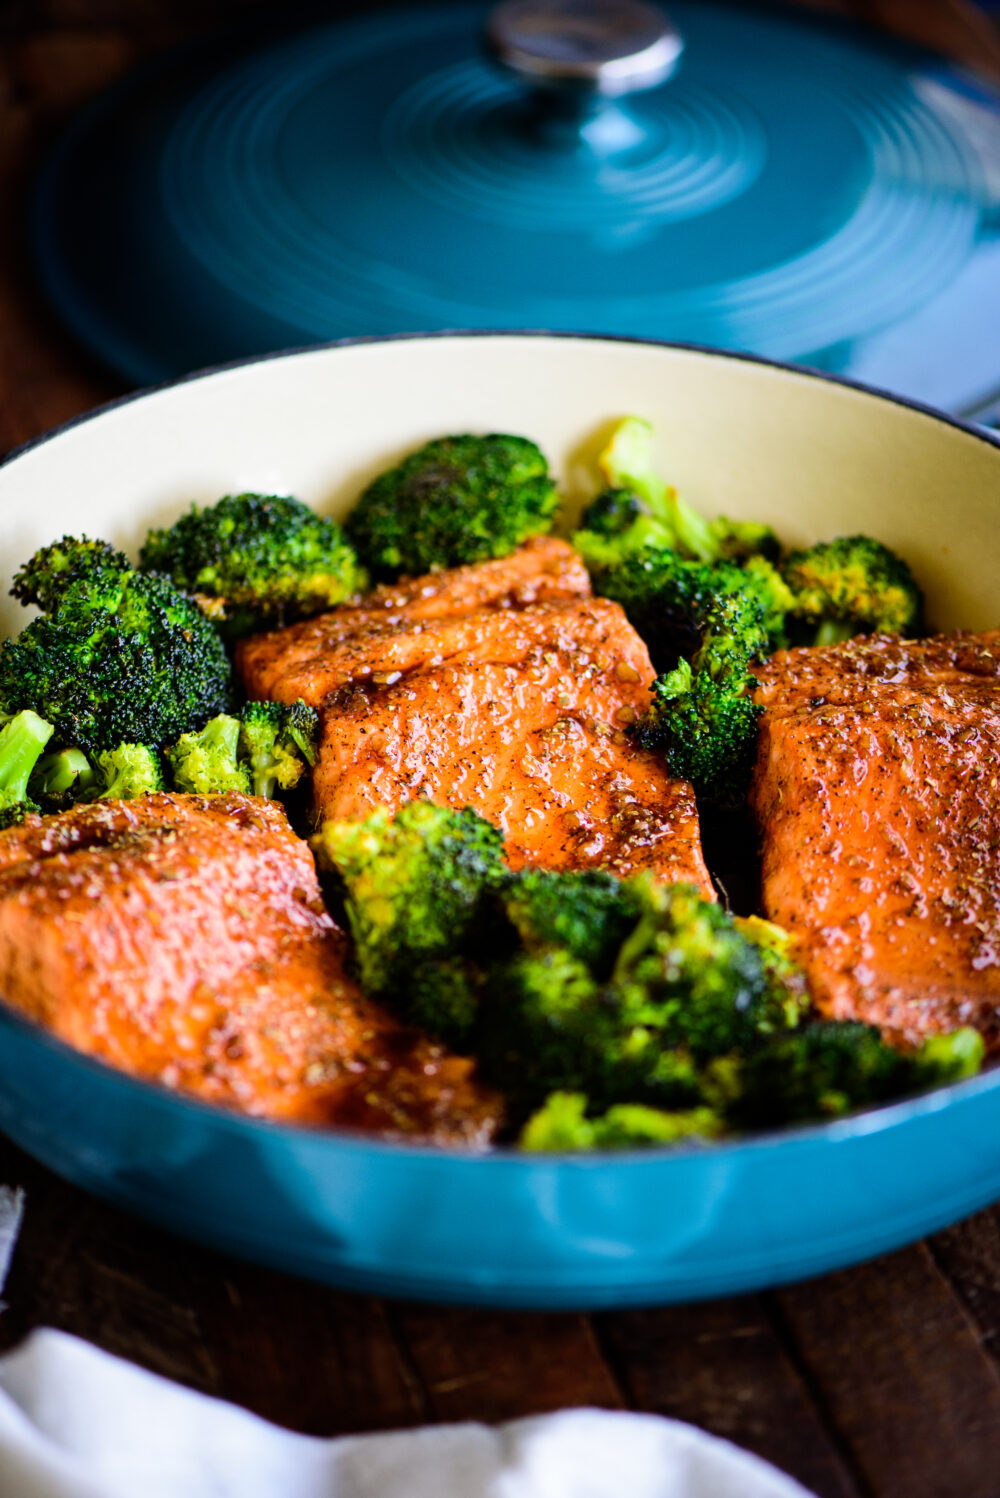 trout served with broccoli